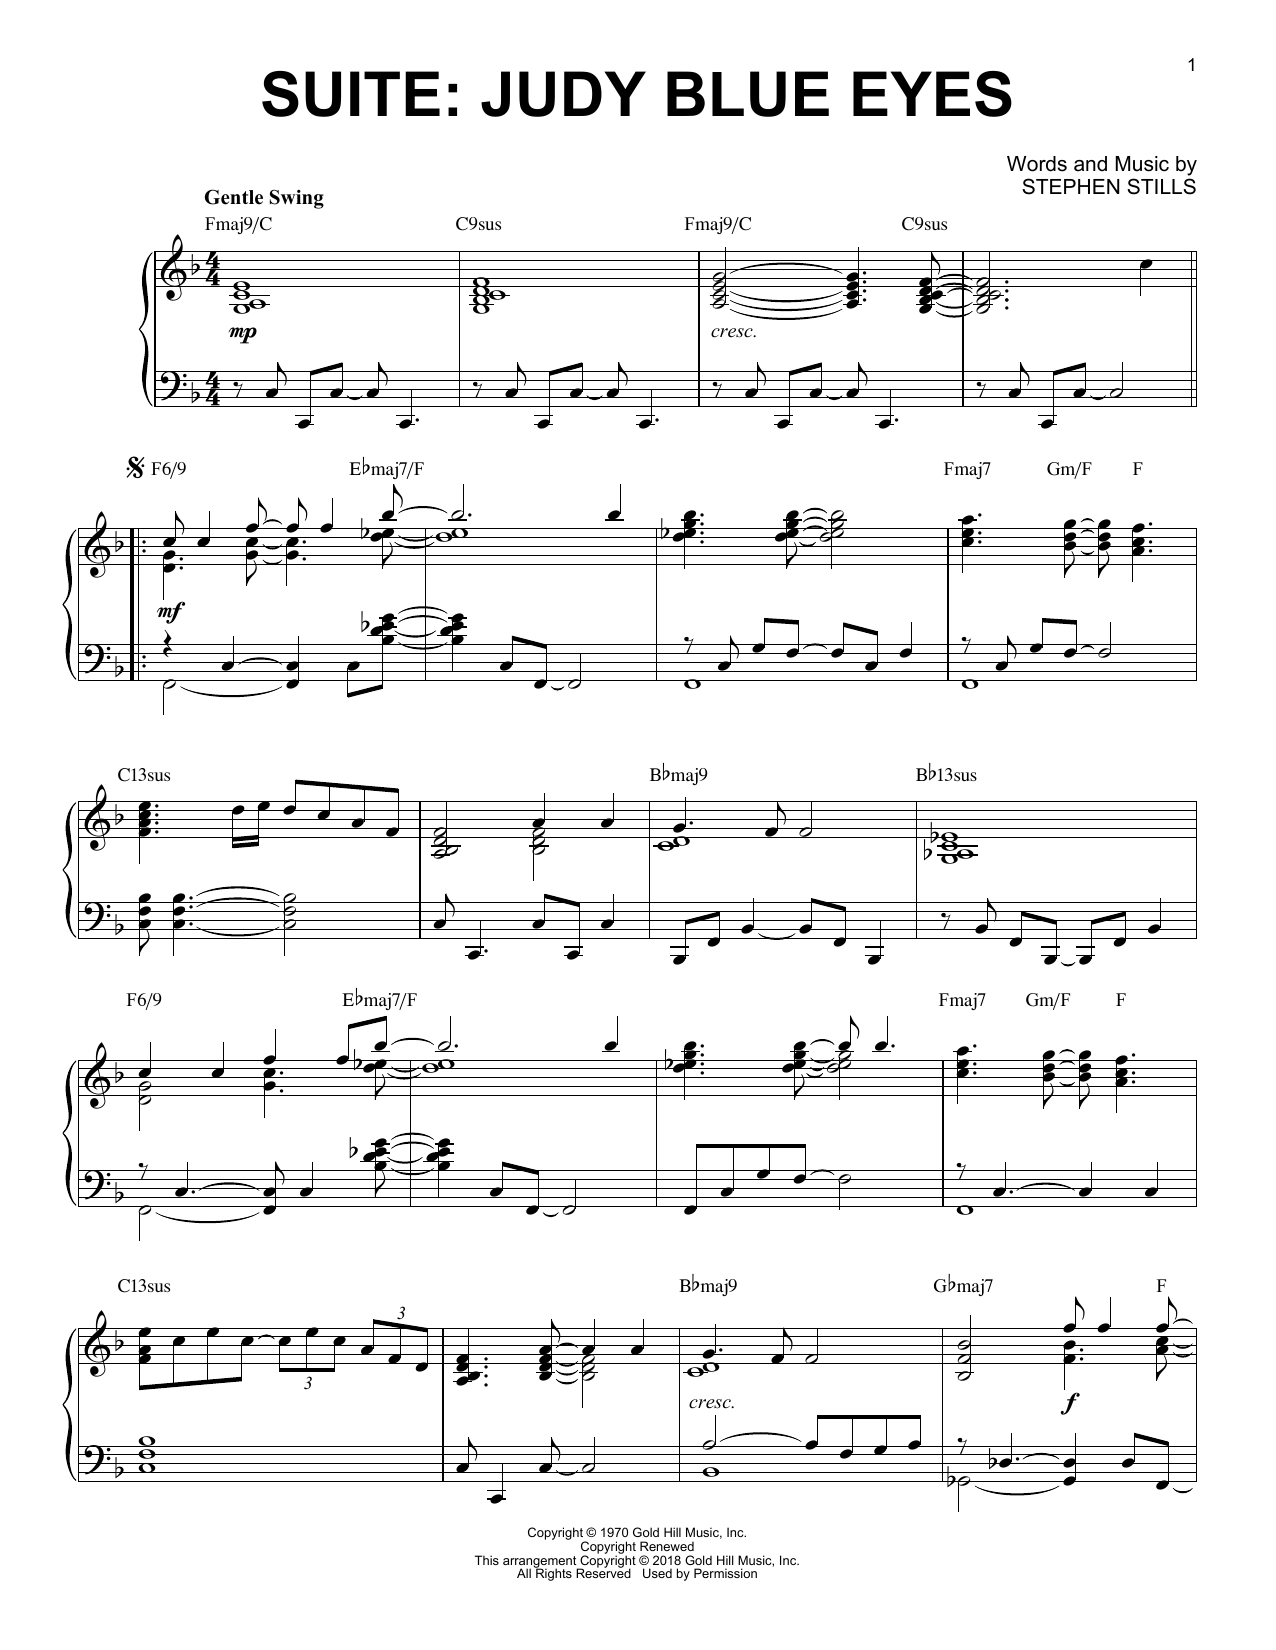 Crosby, Stills & Nash Suite: Judy Blue Eyes [Jazz version] sheet music notes and chords. Download Printable PDF.